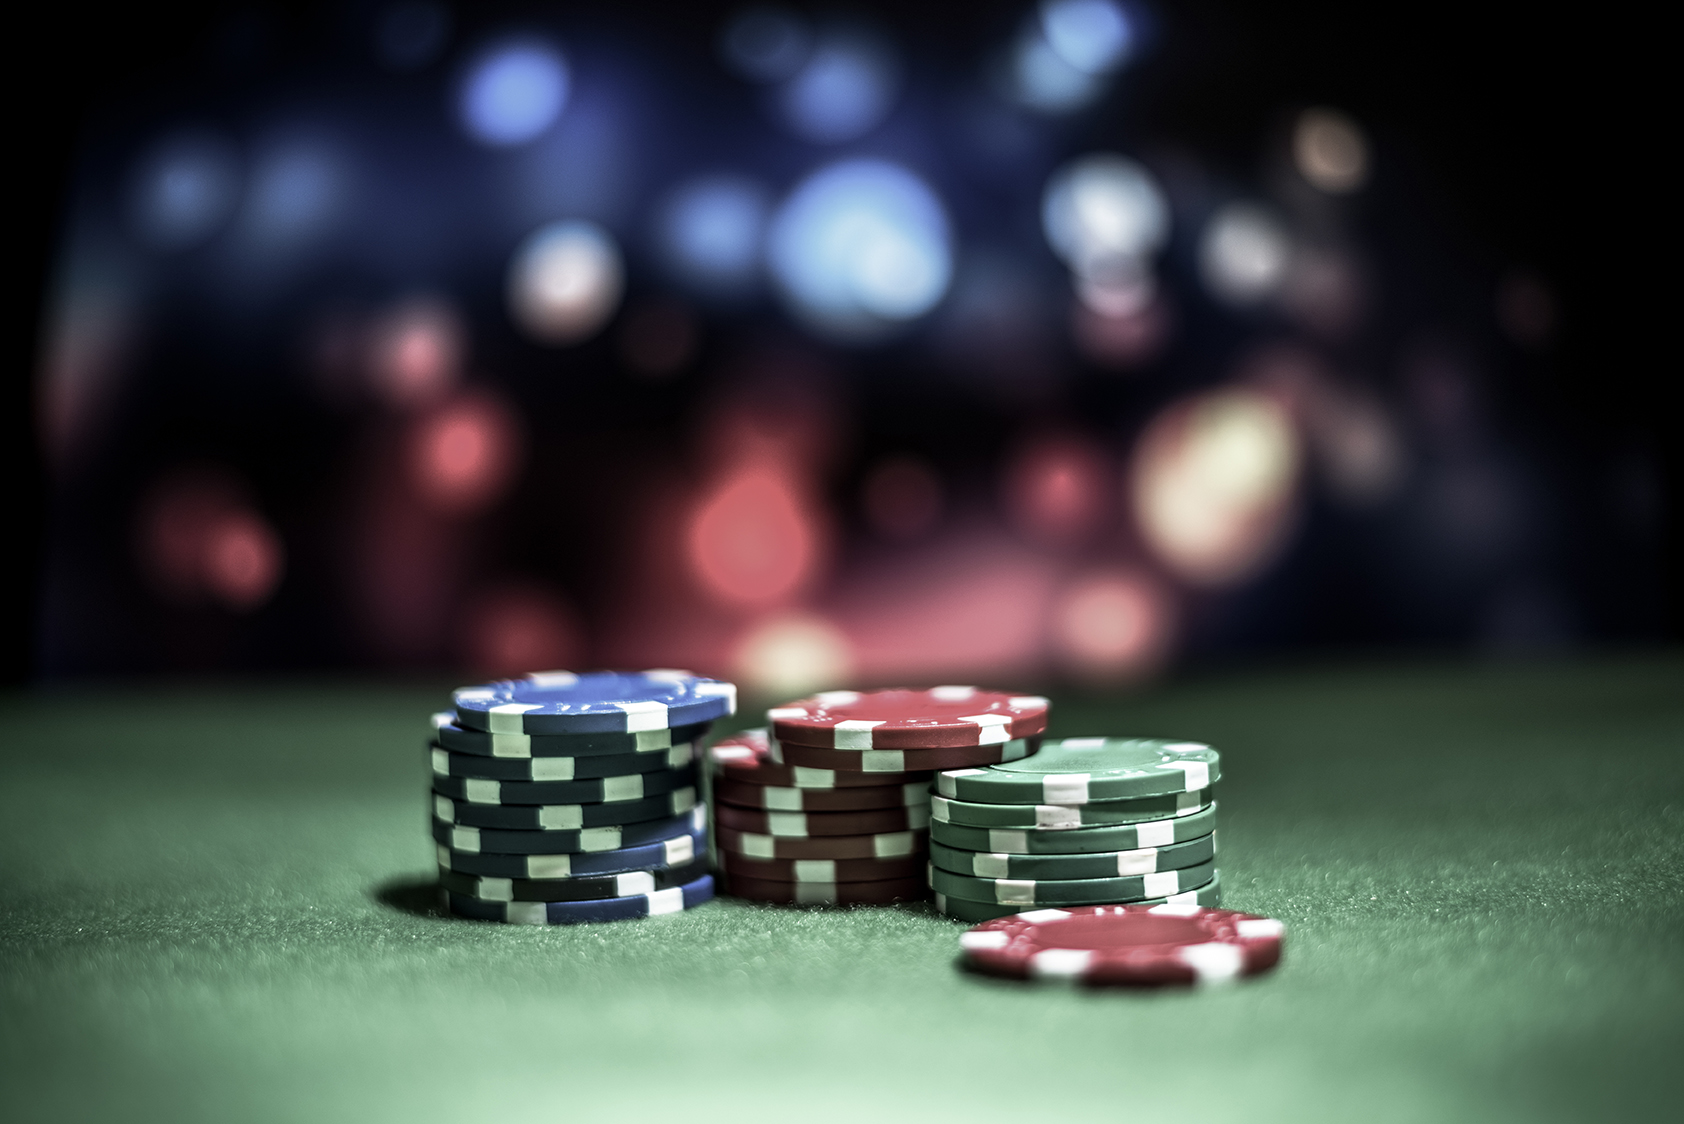 11 Tricks to play and win at Poker